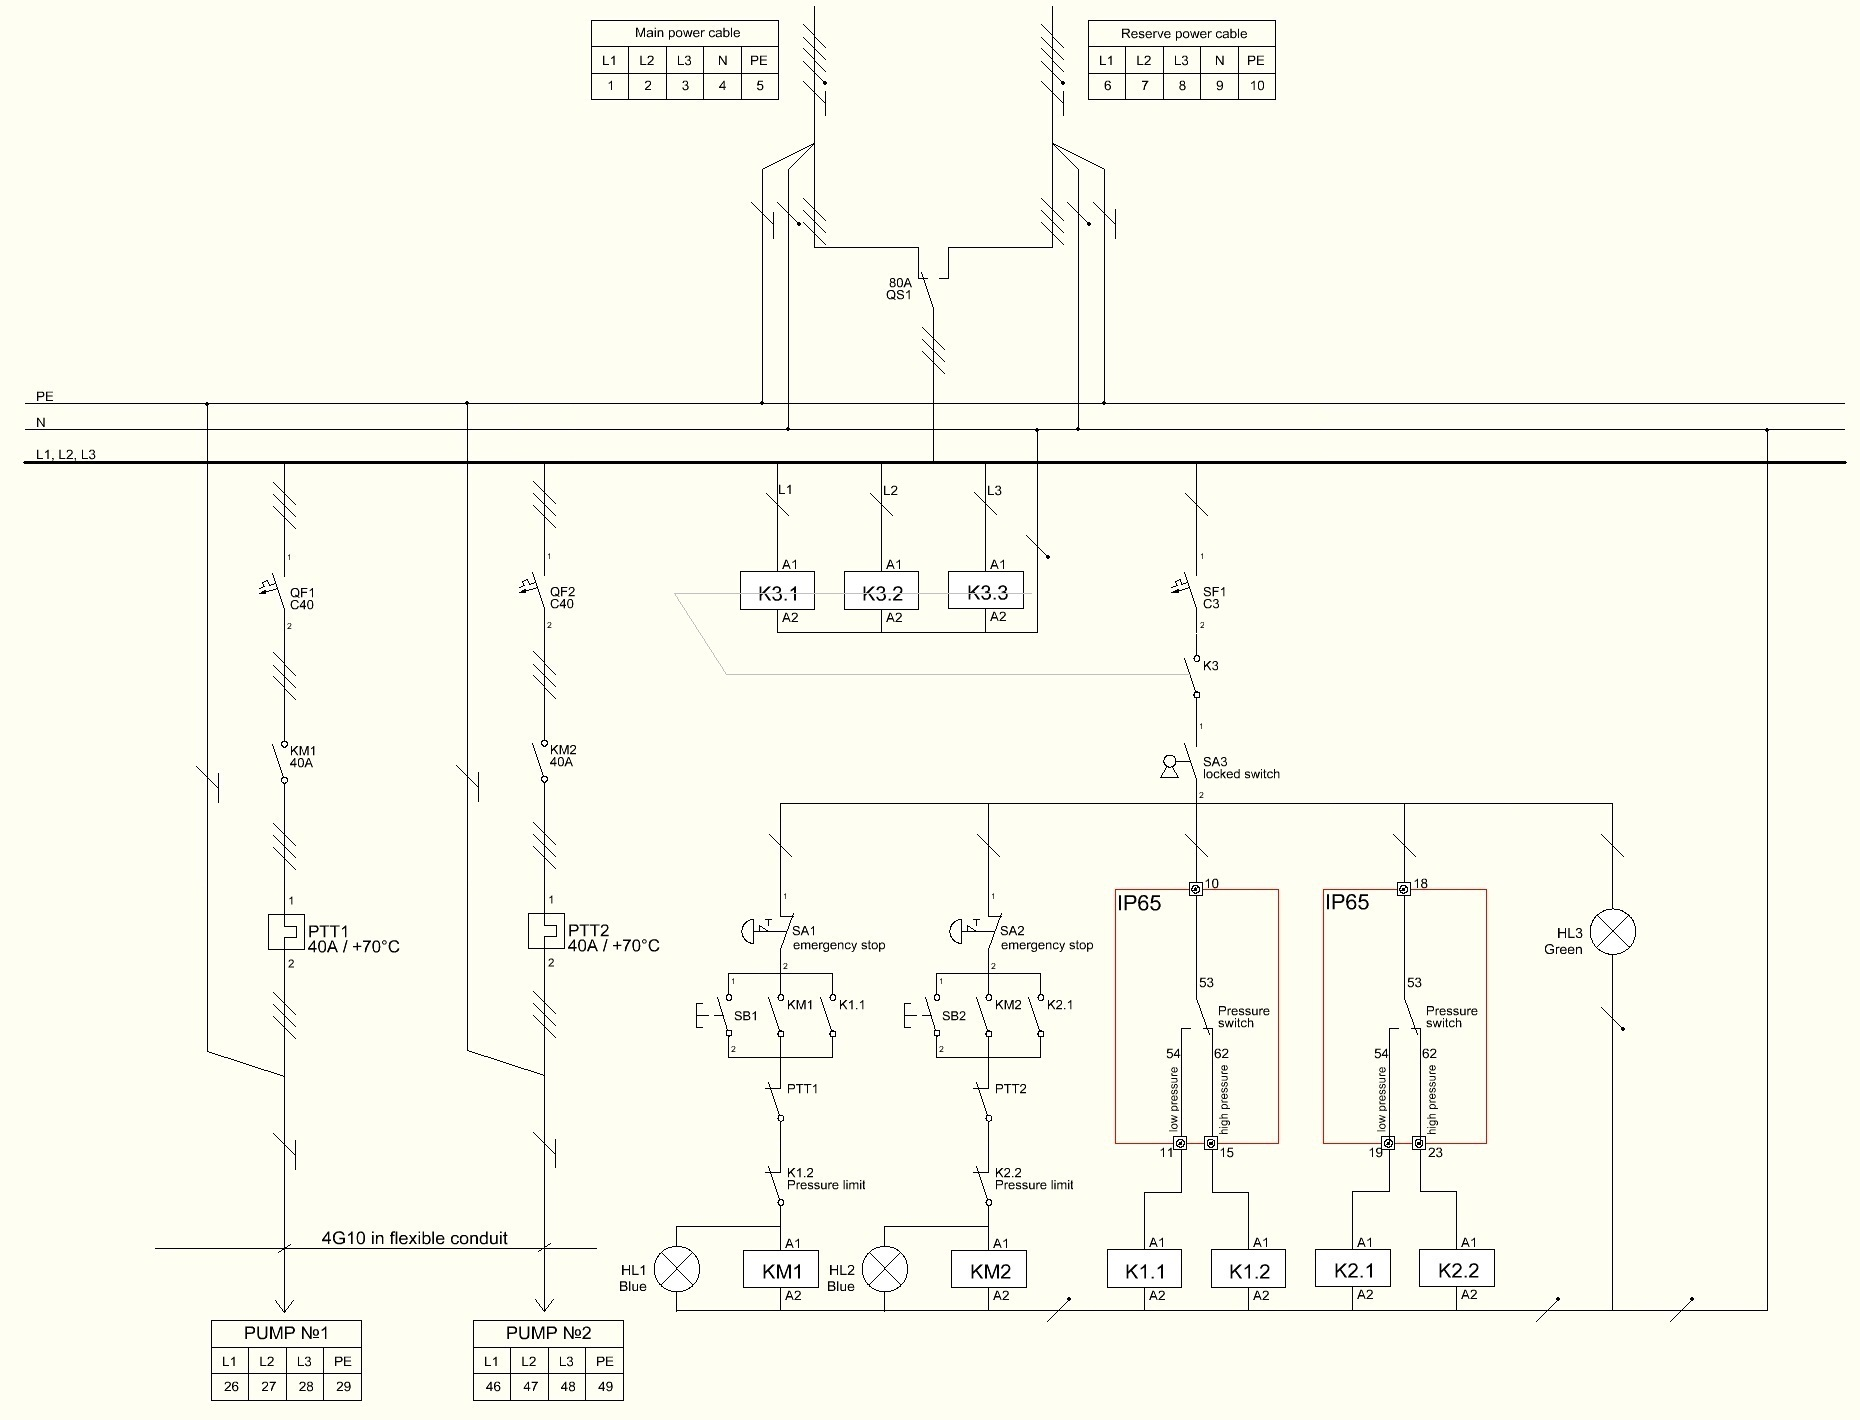 Wiring Diagram Local Control Station - Wiring Diagram Local on